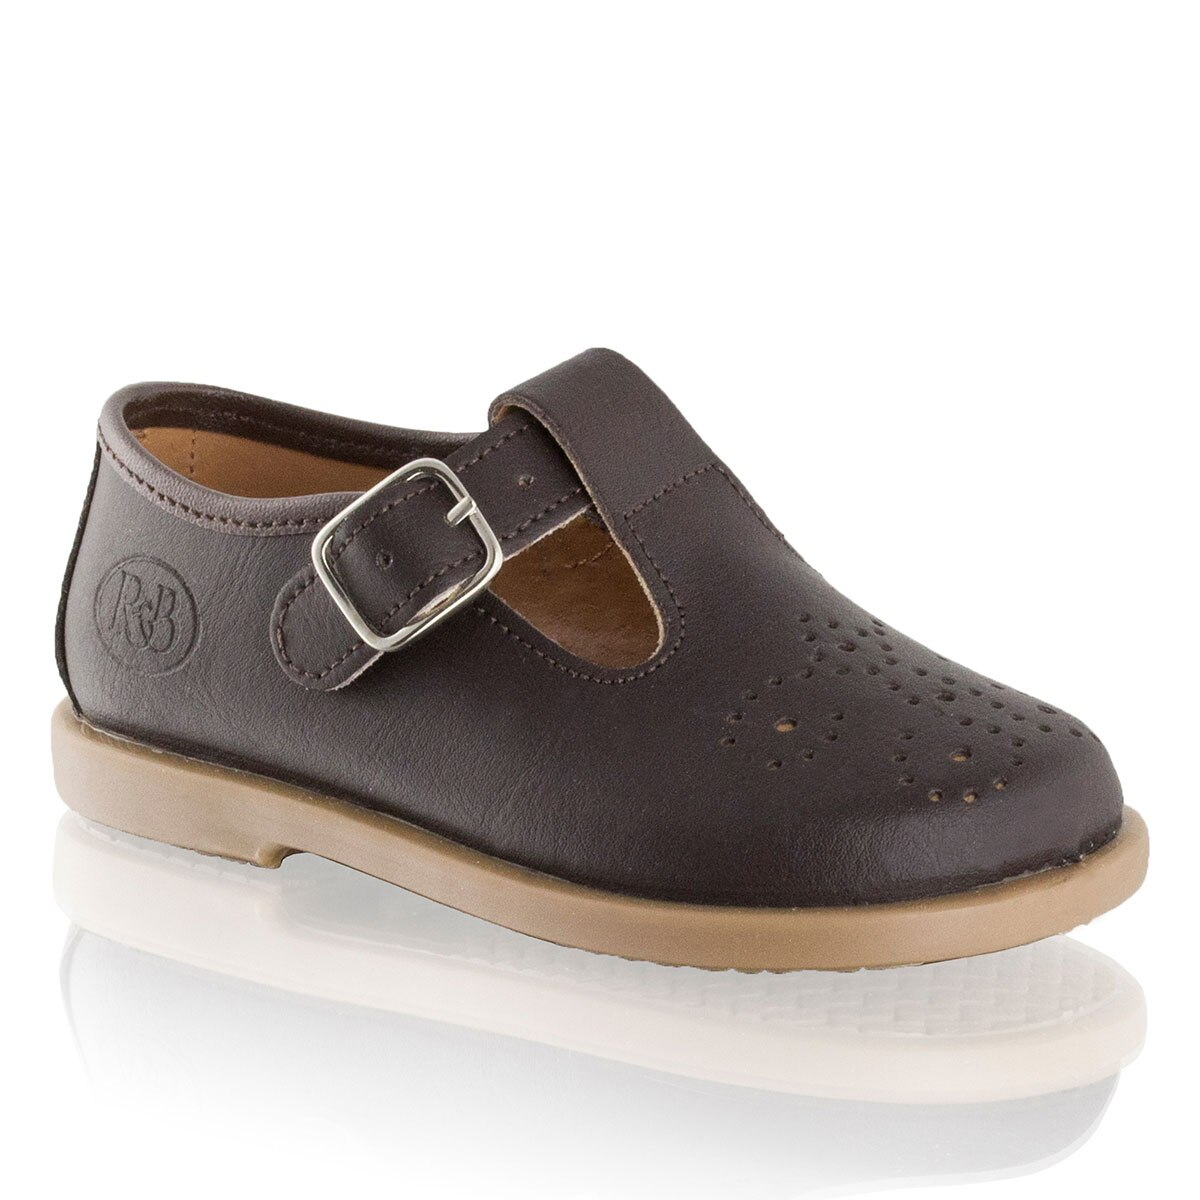 Russell and Bromley MILO Buckle T-Bar Brogue Shoe